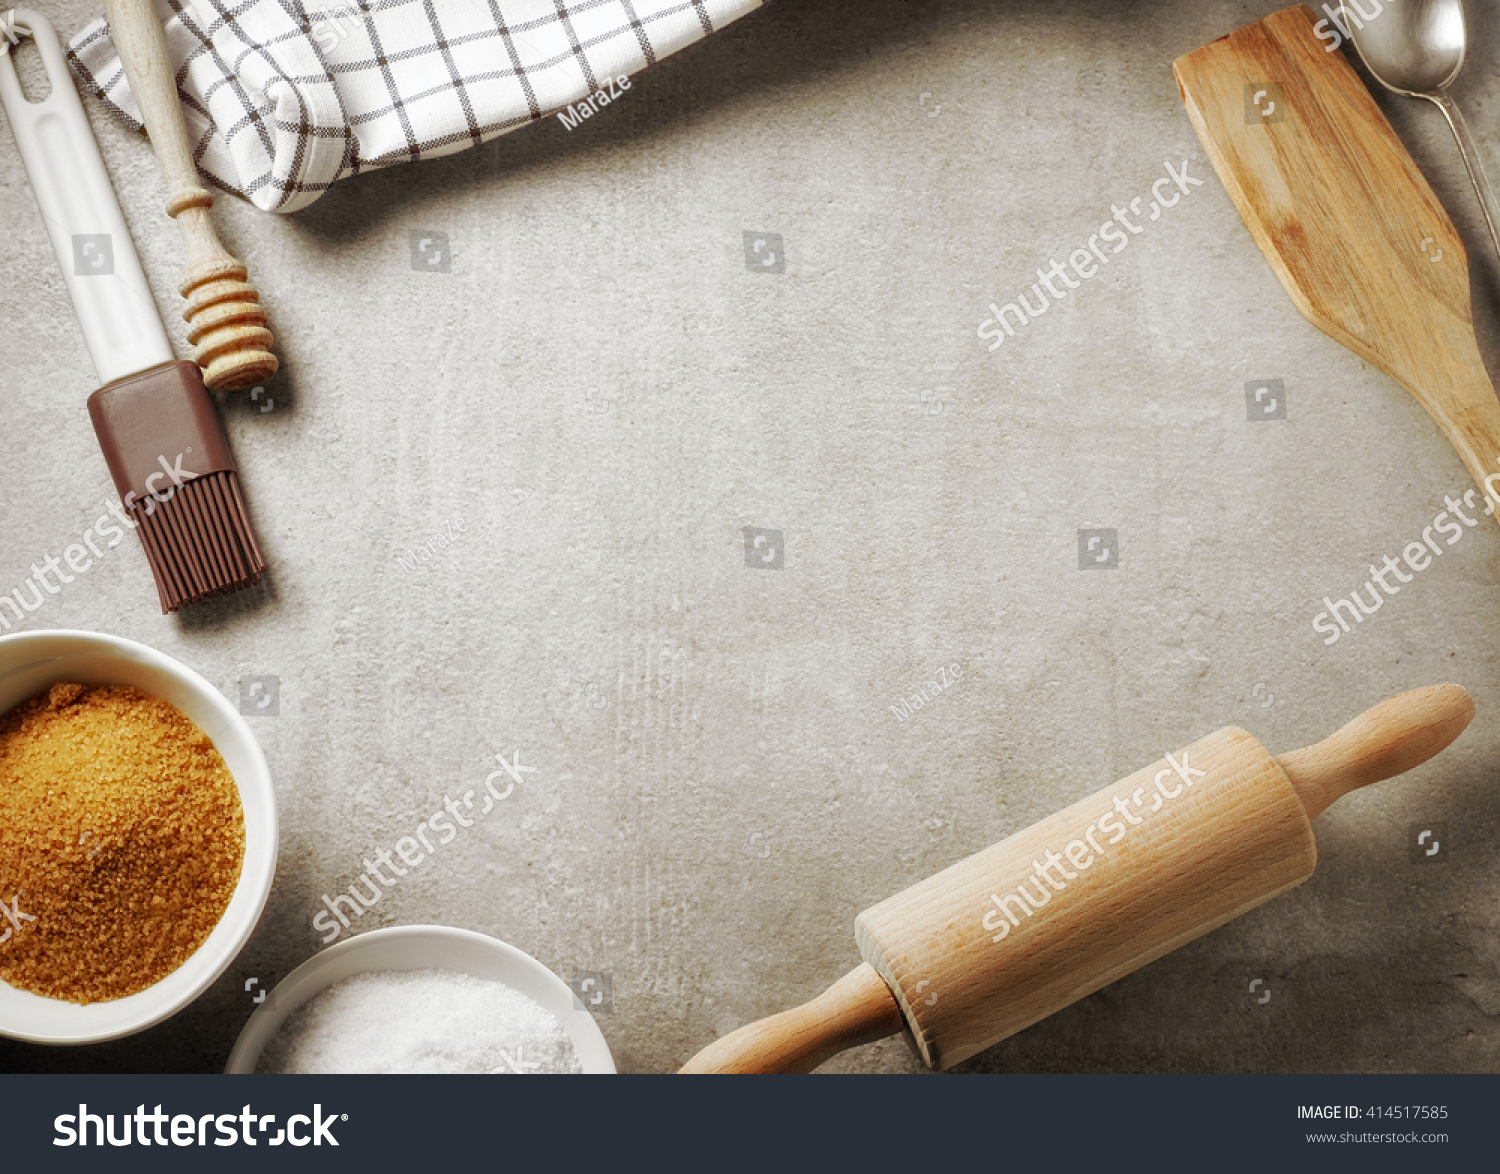 Kitchen Table Top Background top view kitchen table baking utensil stock photo 414517585